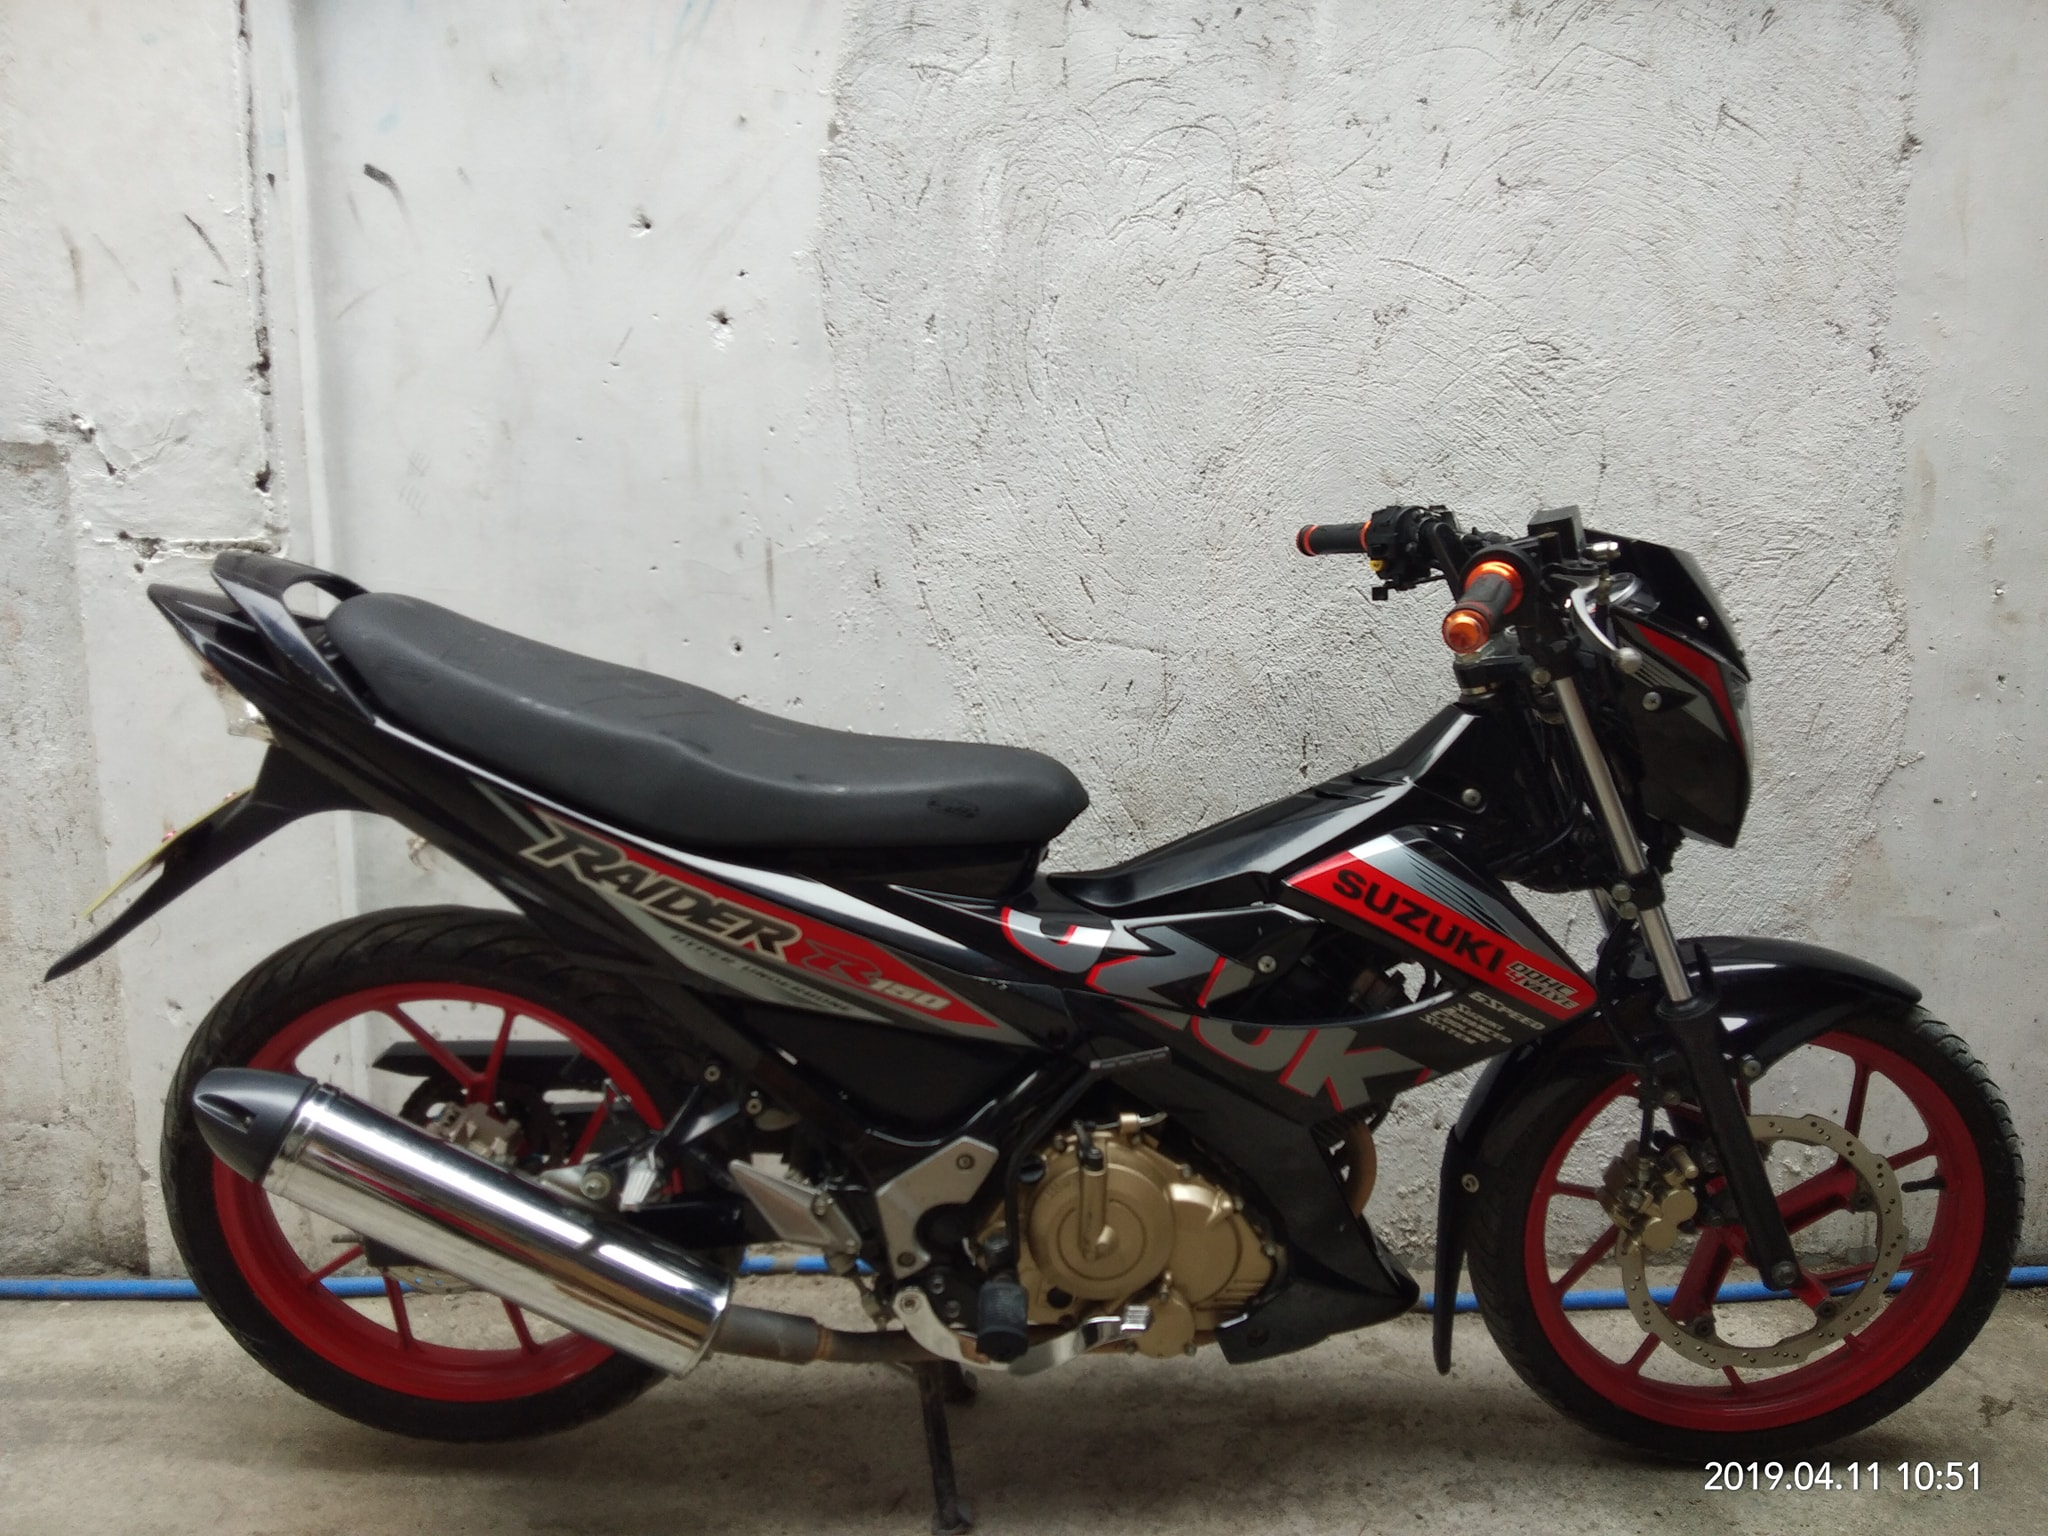 suzuki r150cc 2016model reloaded photo